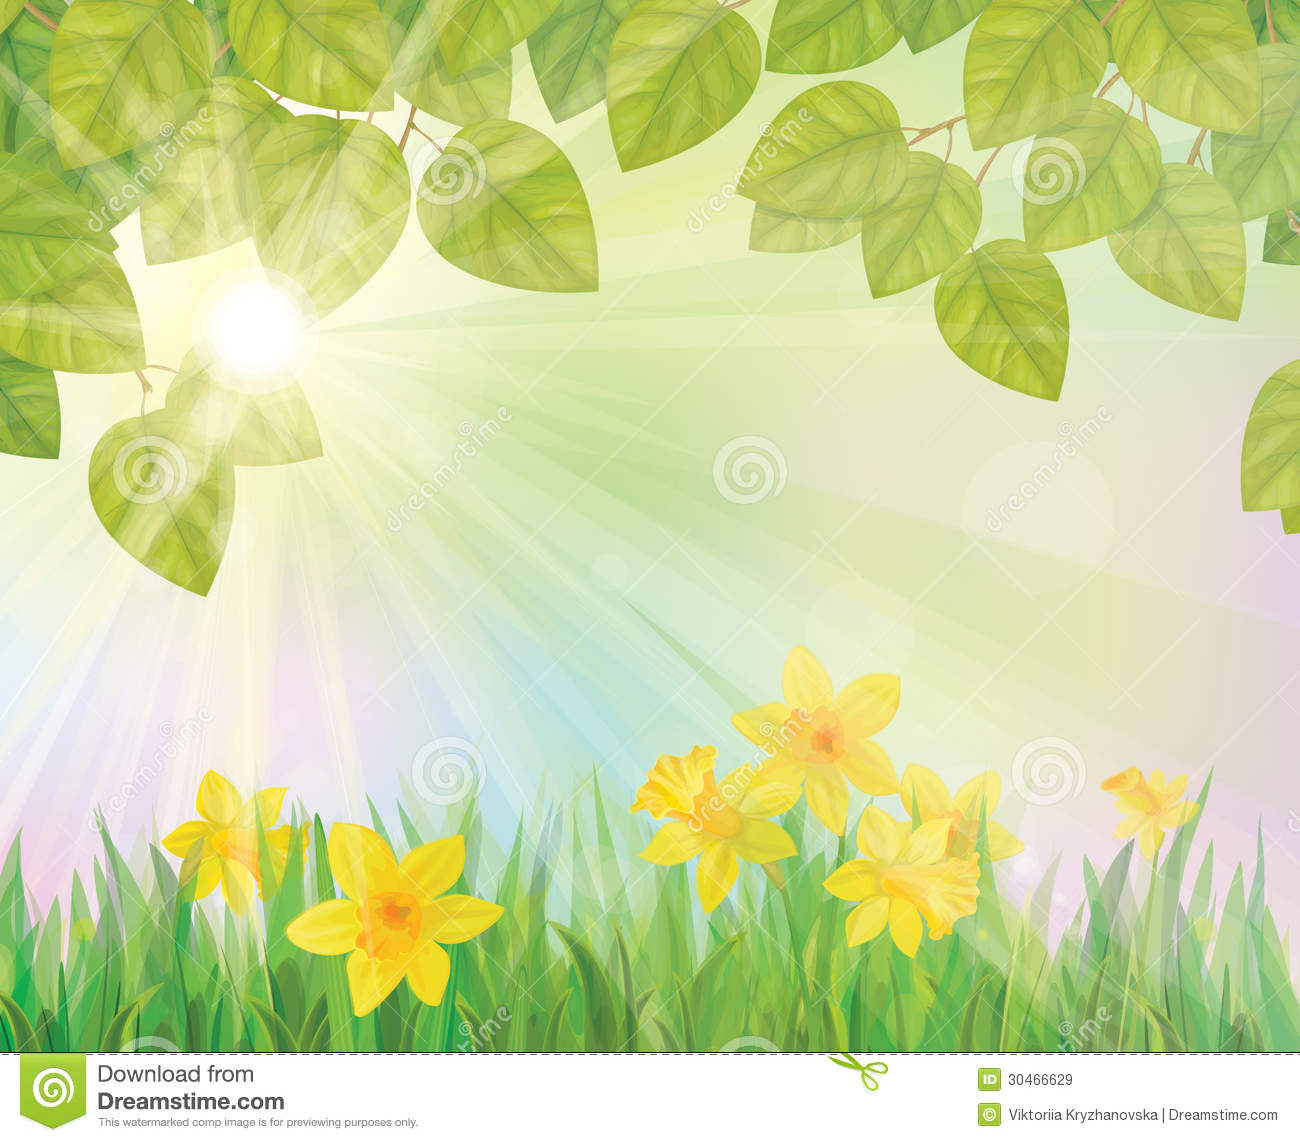 Spring Flower With Green Background Vector 02 Free Download: Vector Of Daffodil Flowers On Spring Background. Royalty